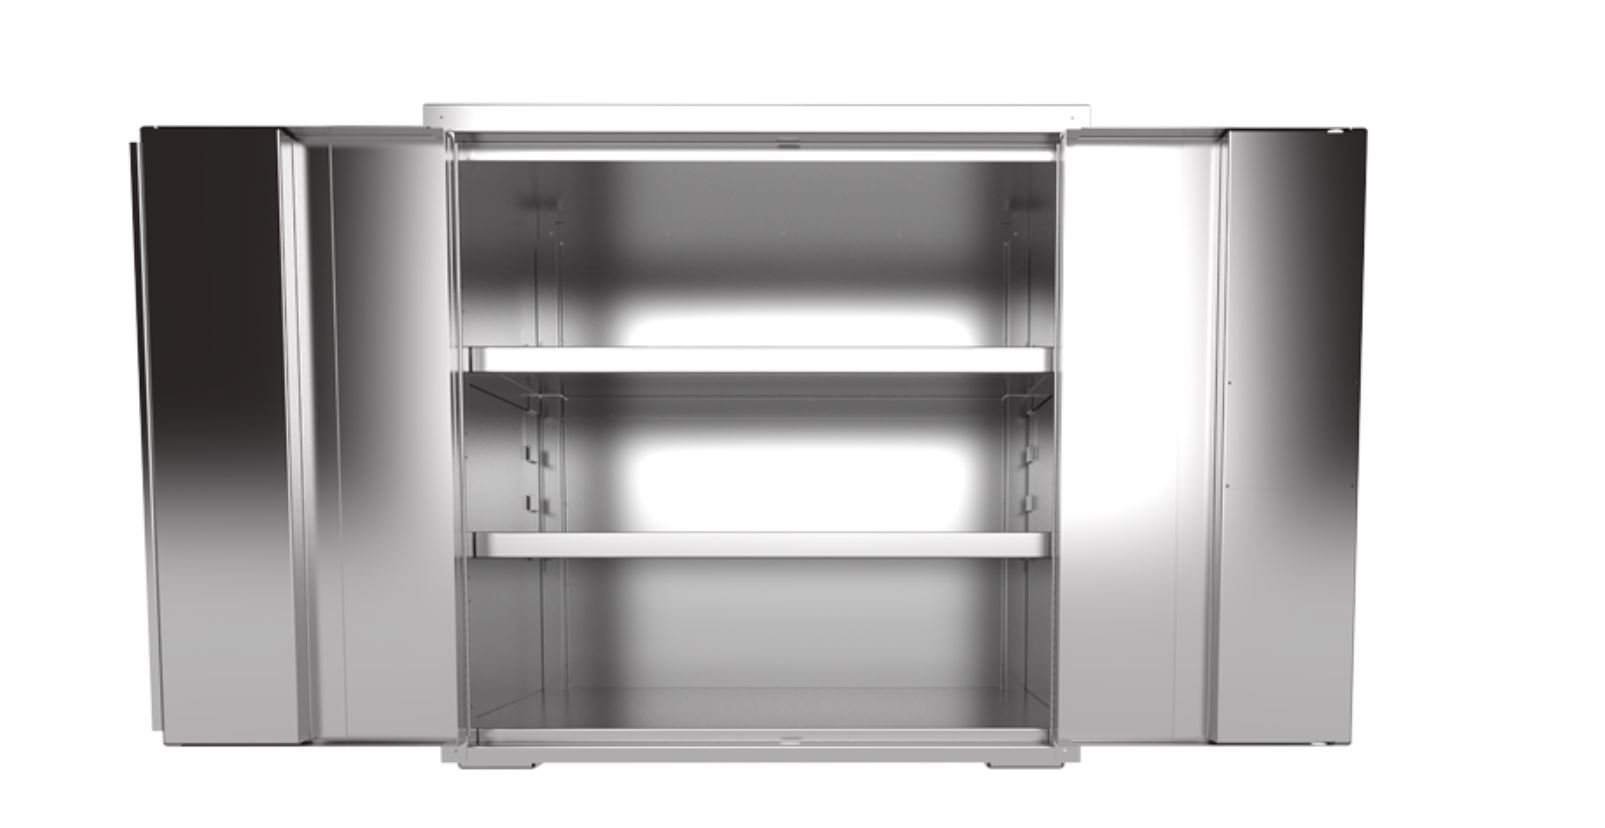 jamco stainless steel cabinet